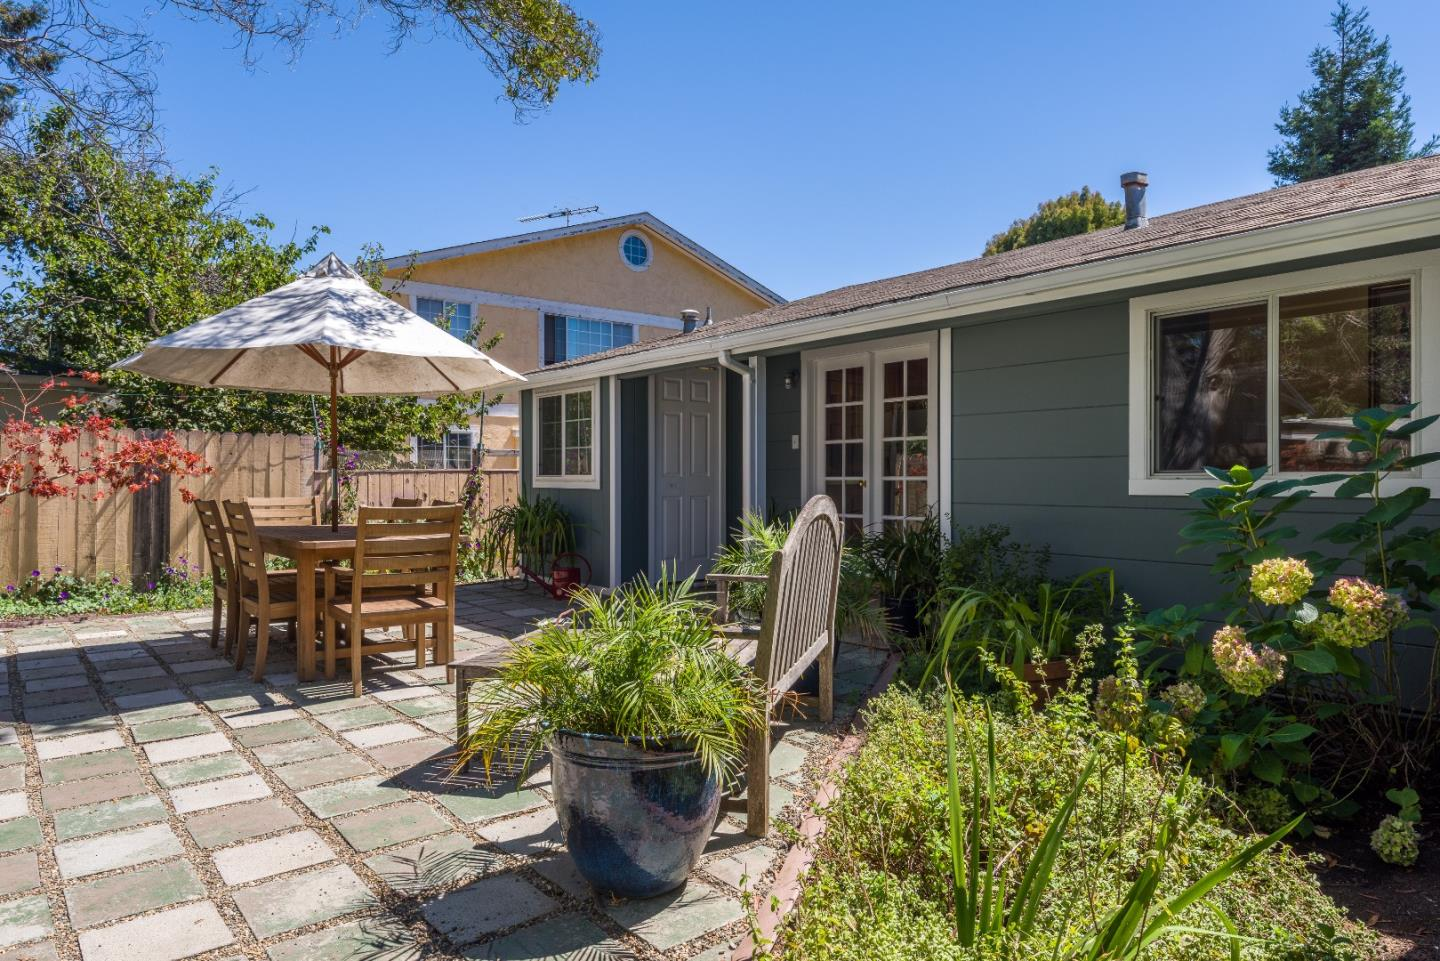 581 7th Avenue Menlo Park, CA 94025 - MLS #: ML81718209